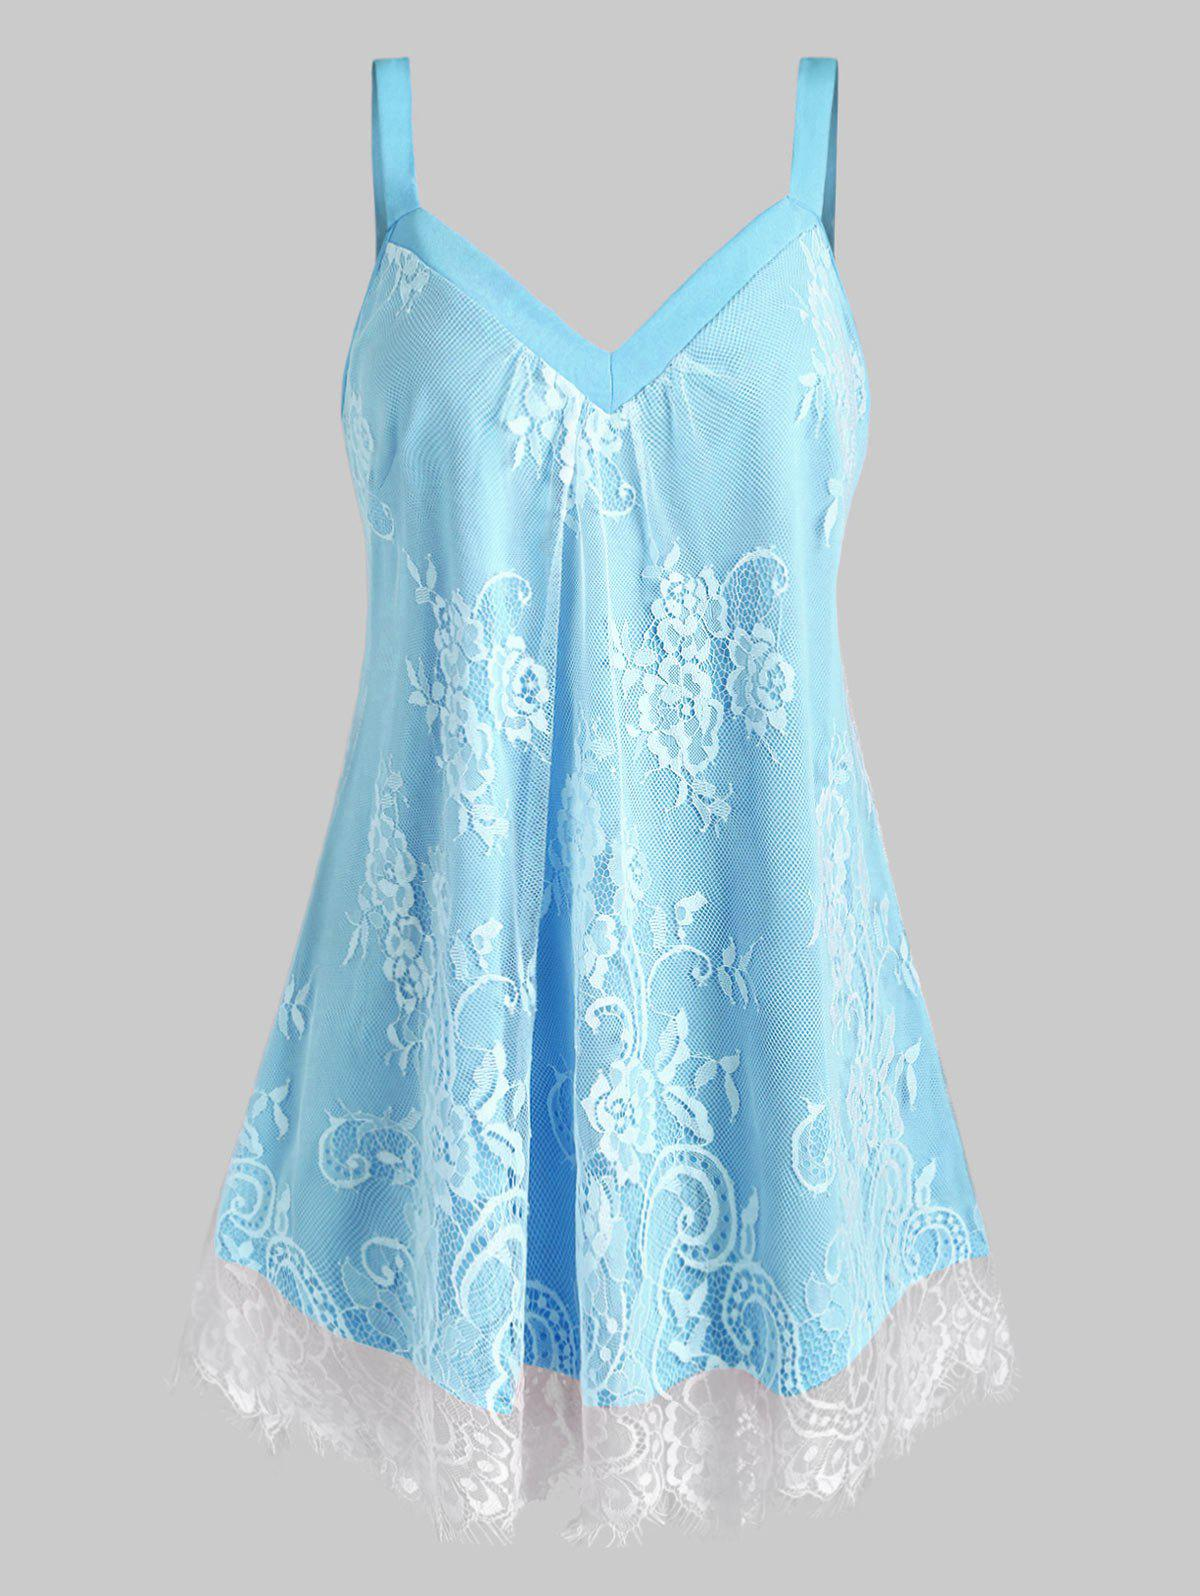 Plus Size Sweetheart Neck Floral Lace Overlay Tank Top - LIGHT BLUE 5X